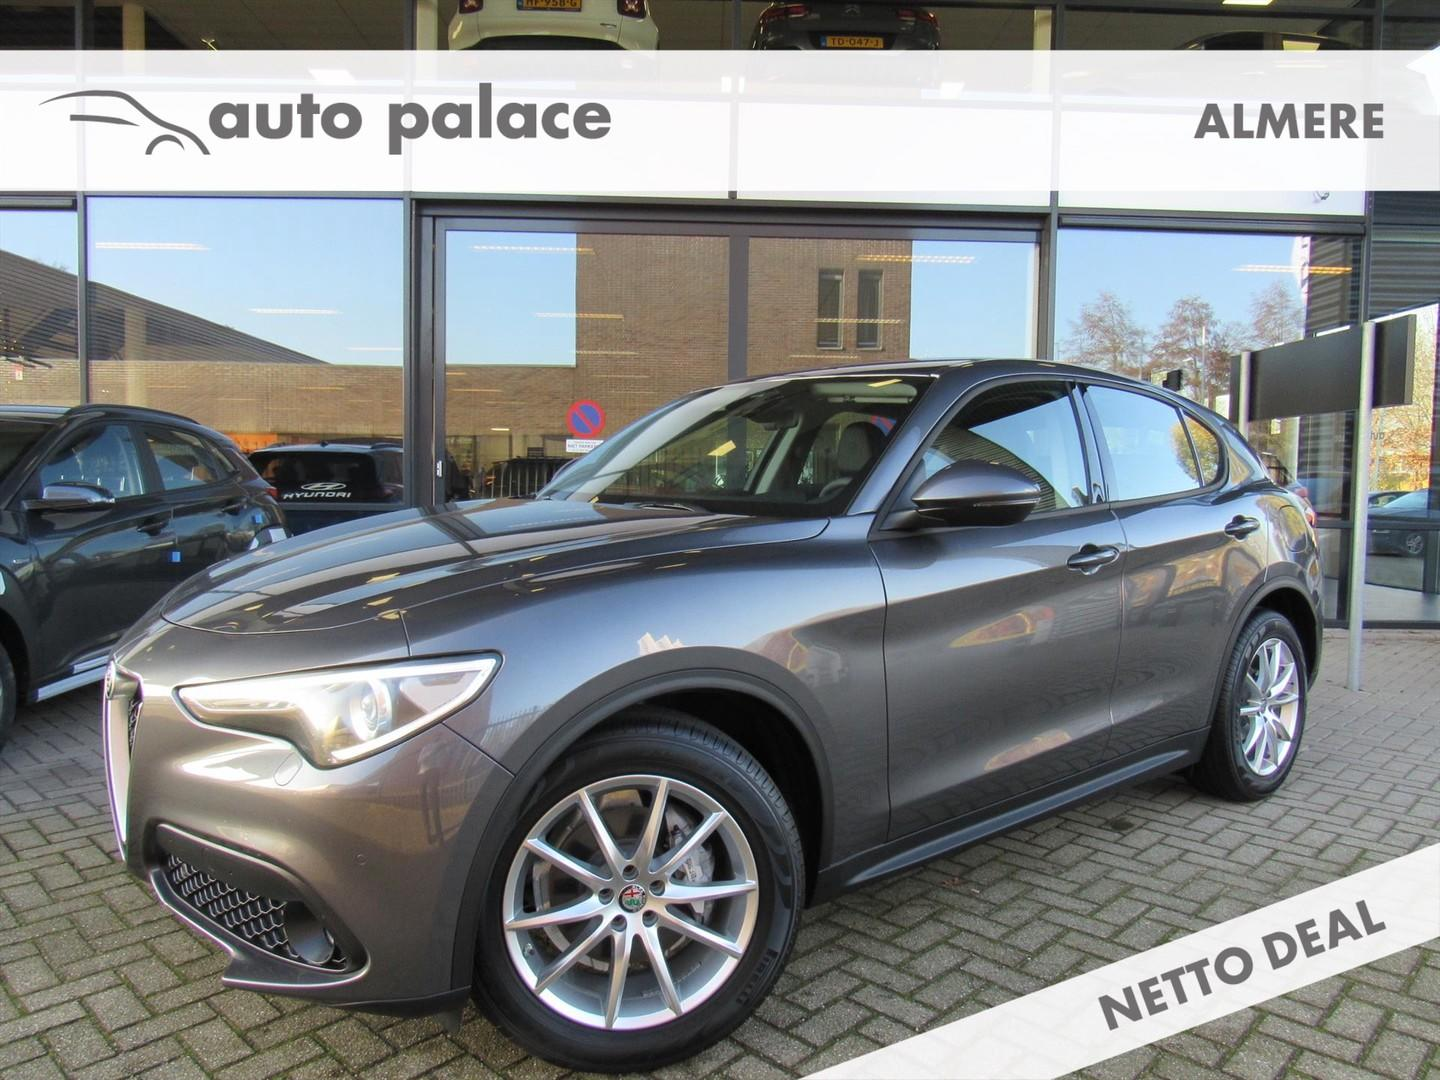 Alfa romeo Stelvio 2.2 jtd at 180pk super